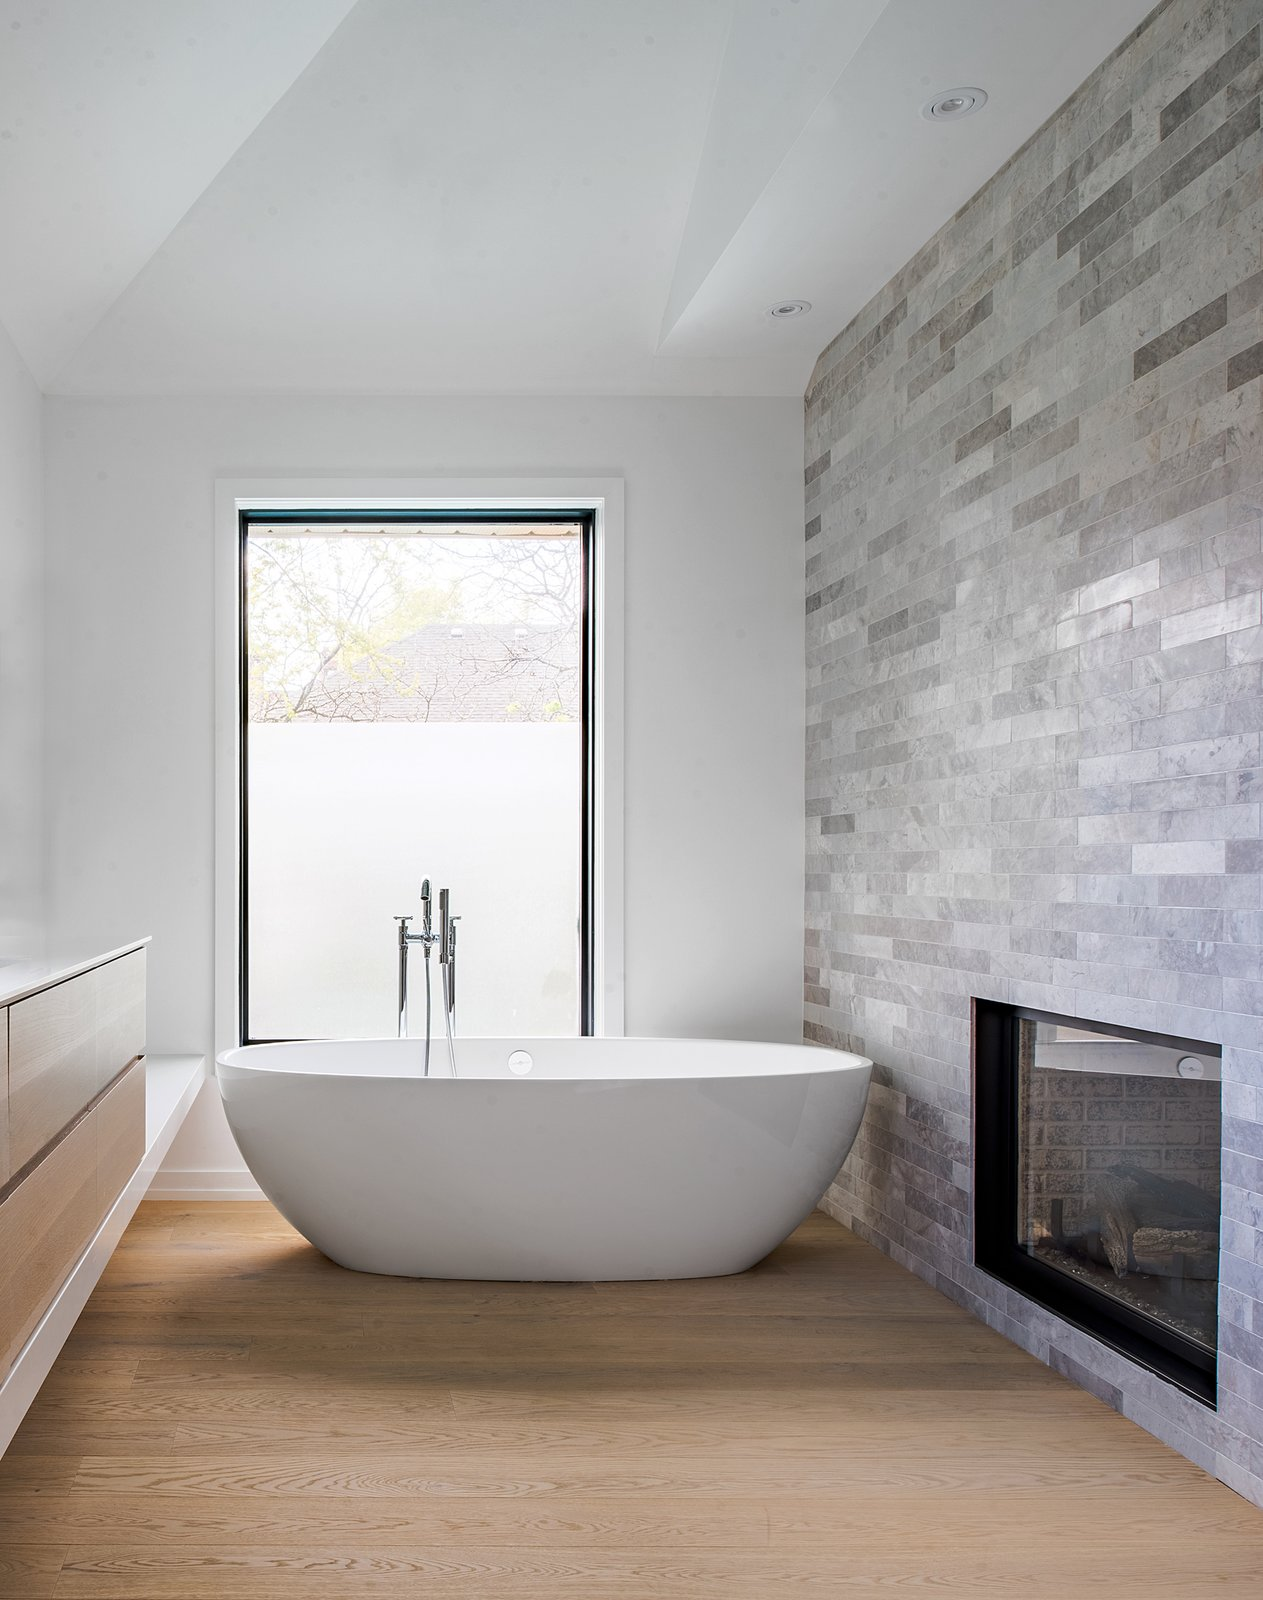 Tagged: Bath Room, Engineered Quartz Counter, Undermount Sink, Light Hardwood Floor, Freestanding Tub, Ceiling Lighting, Open Shower, Stone Tile Wall, and Soaking Tub. Richview Residence by StudioAC